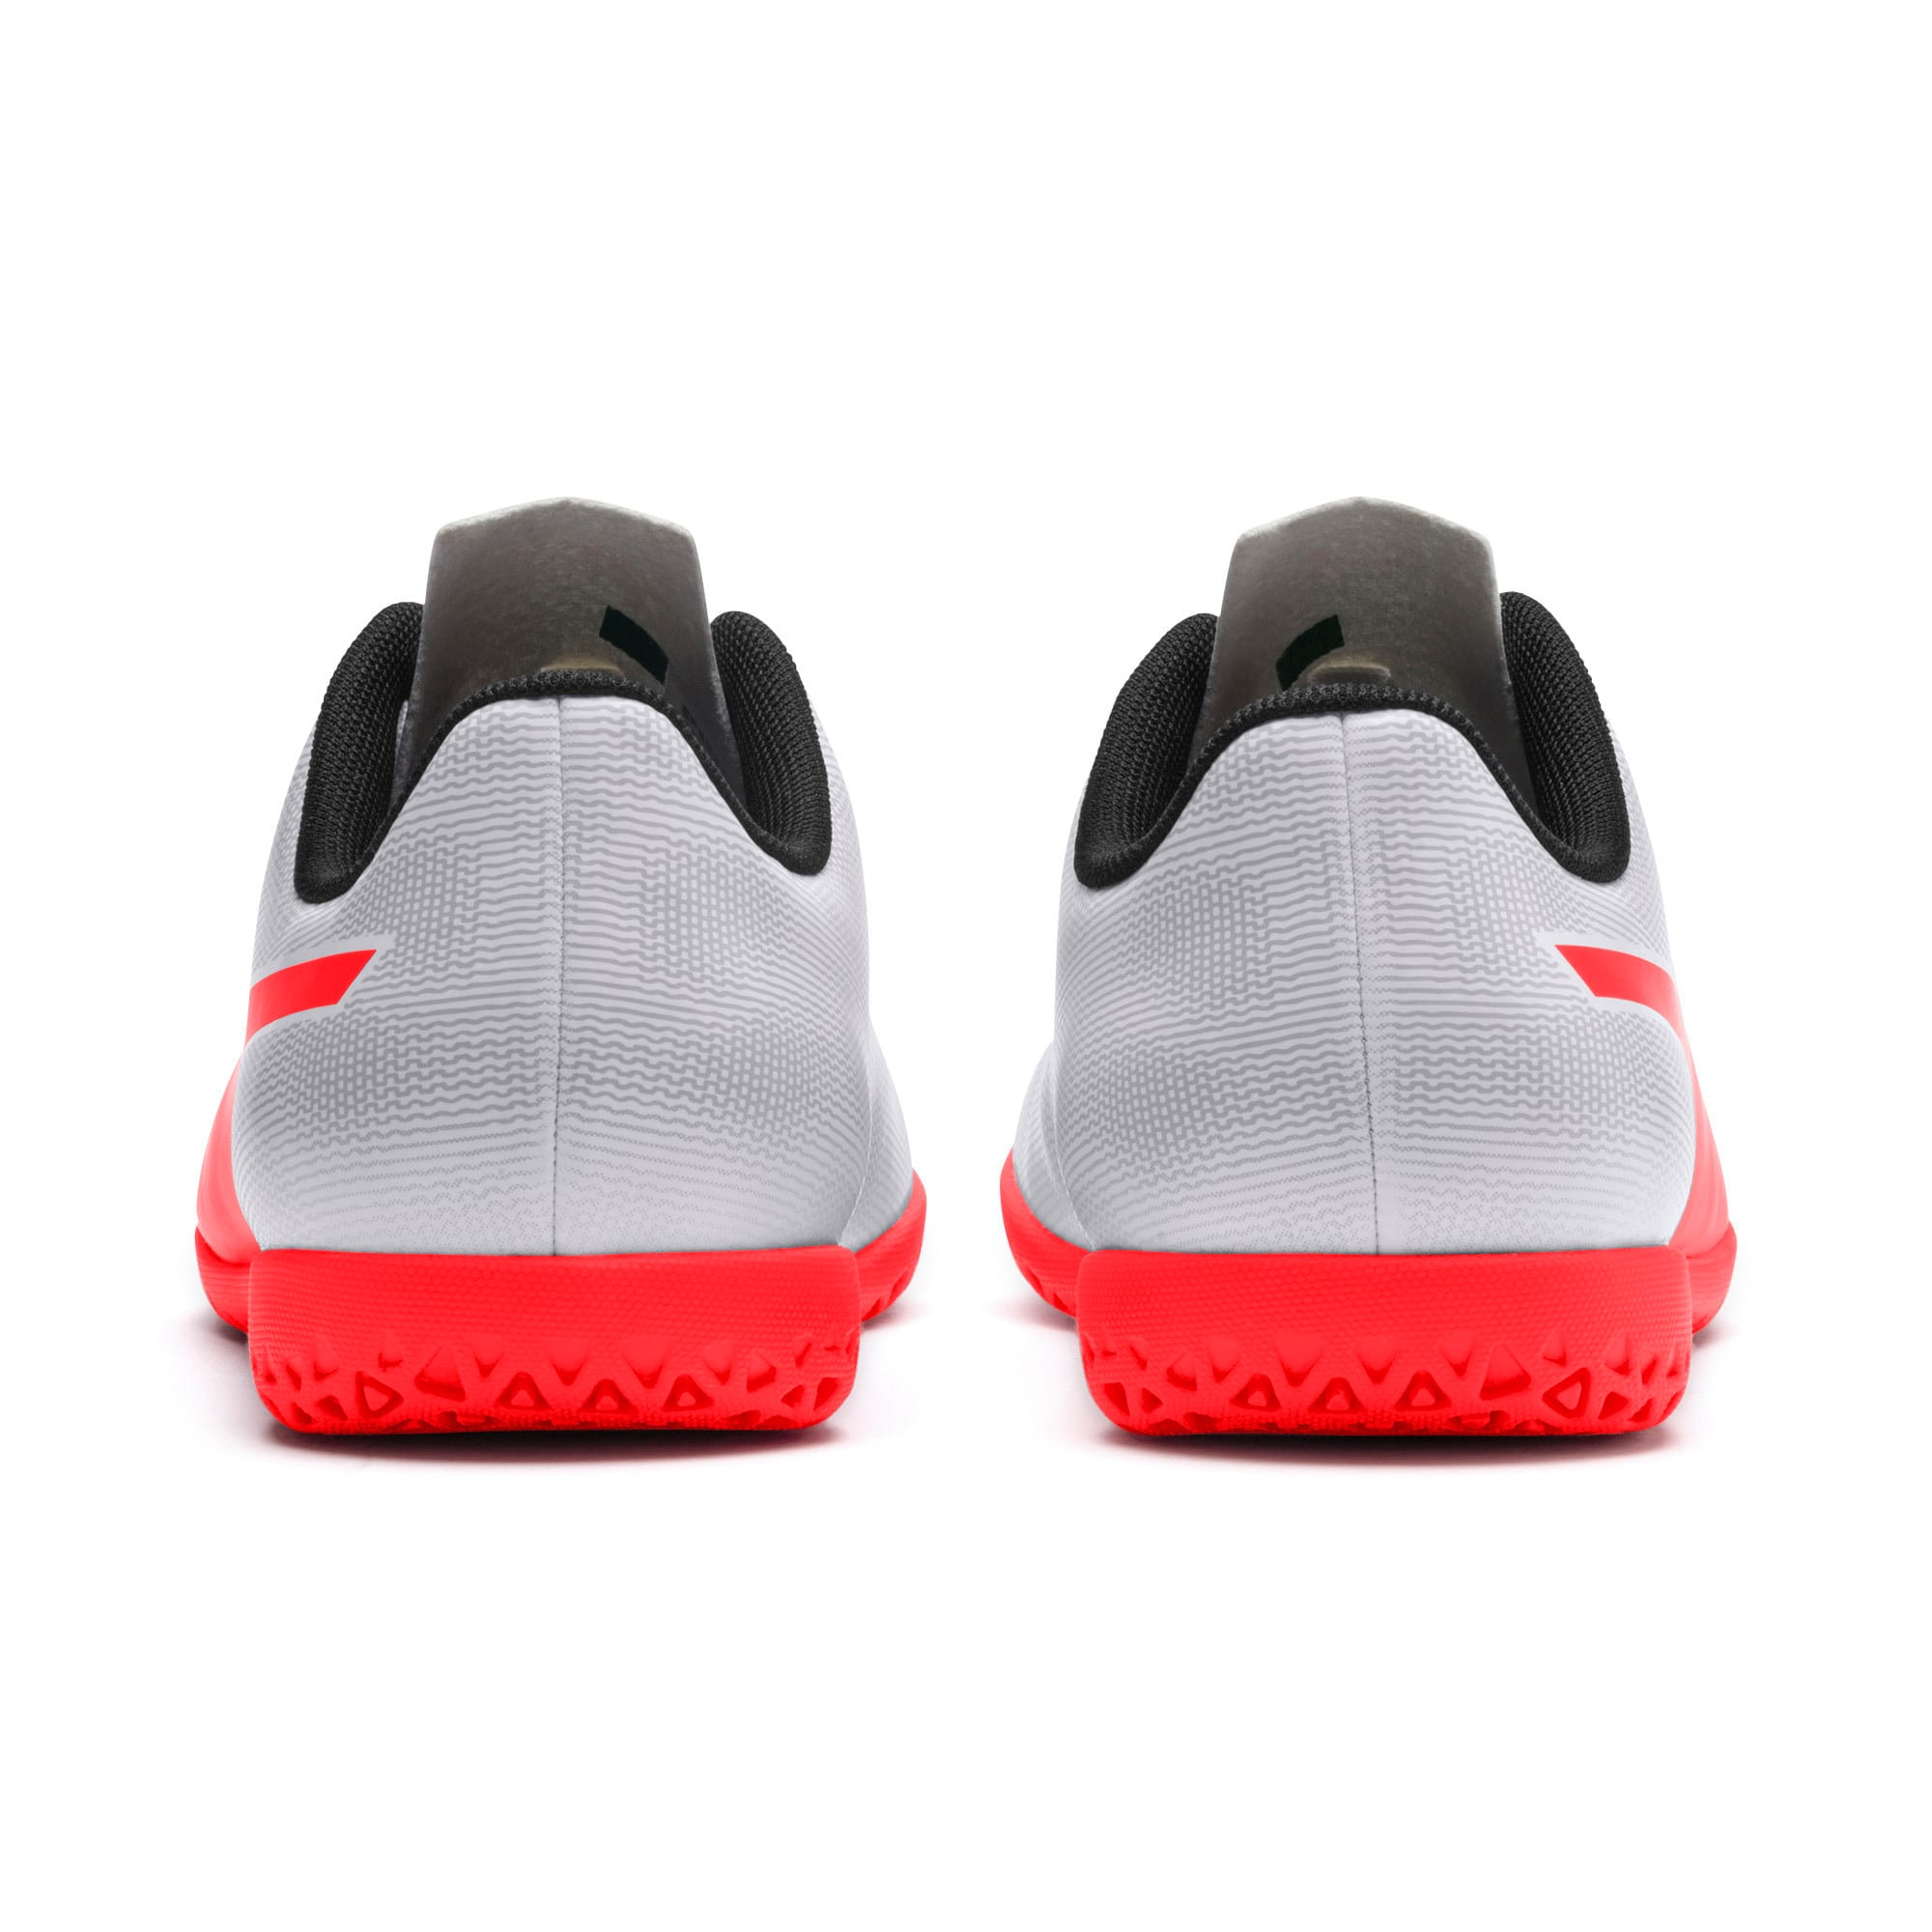 Thumbnail 3 of Rapido IT Youth Football Boots, White-Gray-Black-Red Blast, medium-IND